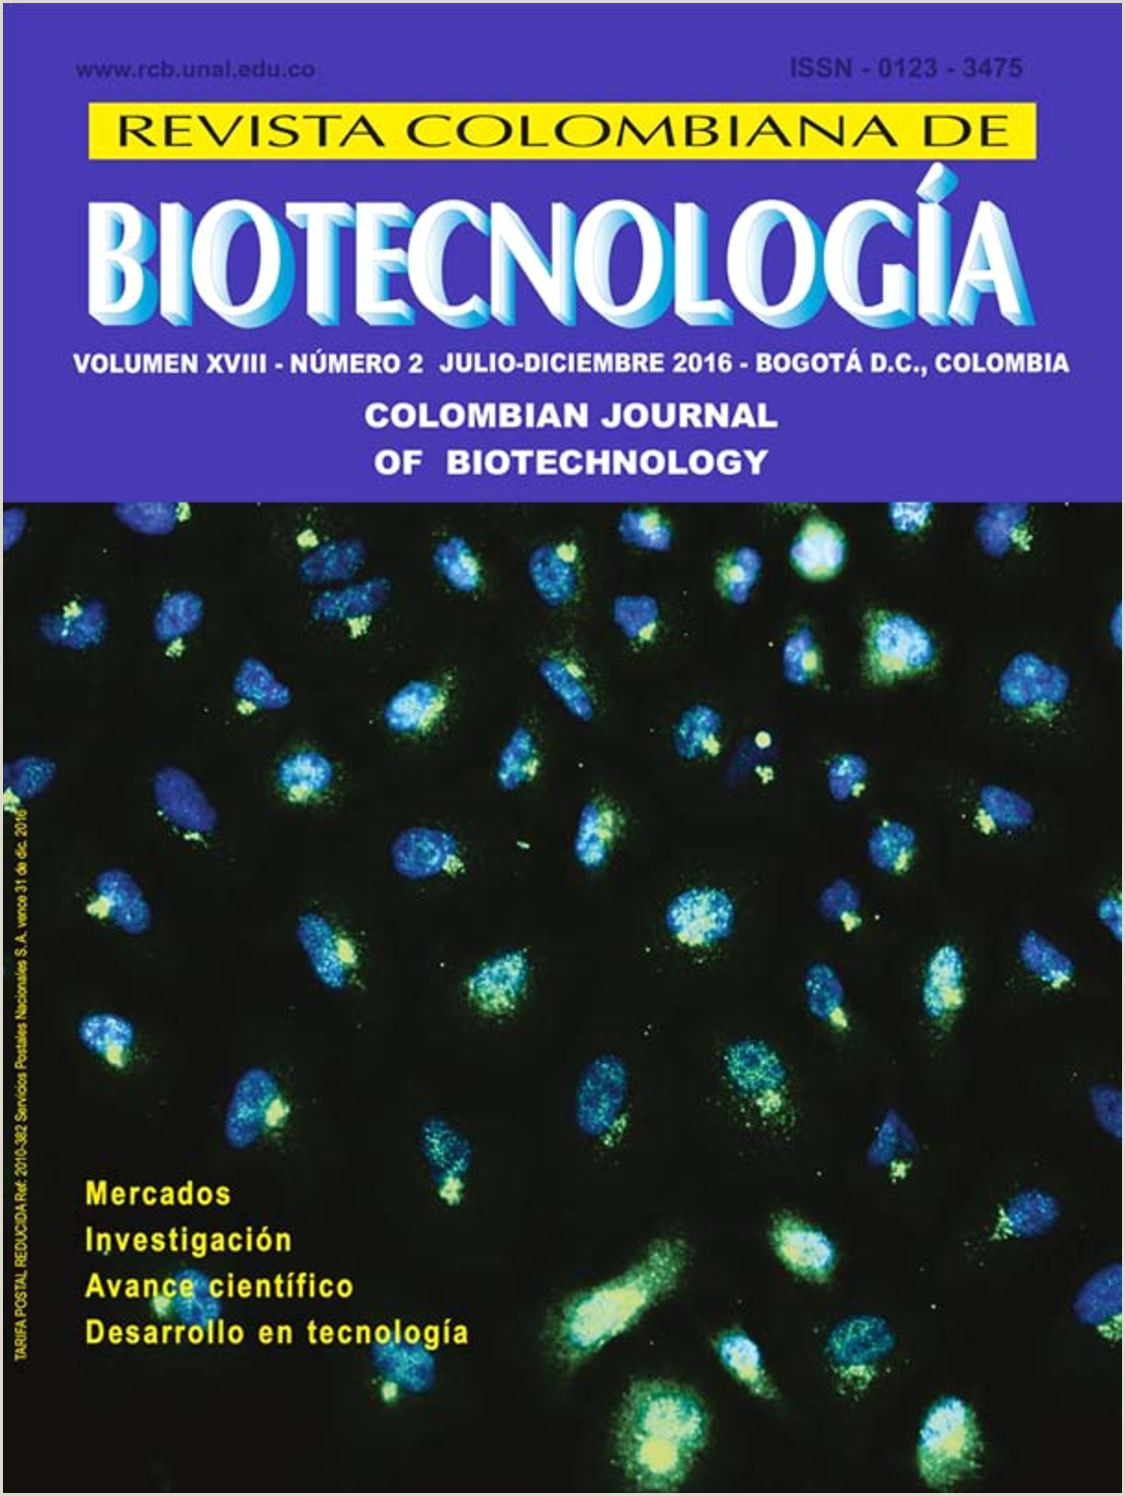 Calaméo Rev Colomb Biotecnol Vol 18 2 2016